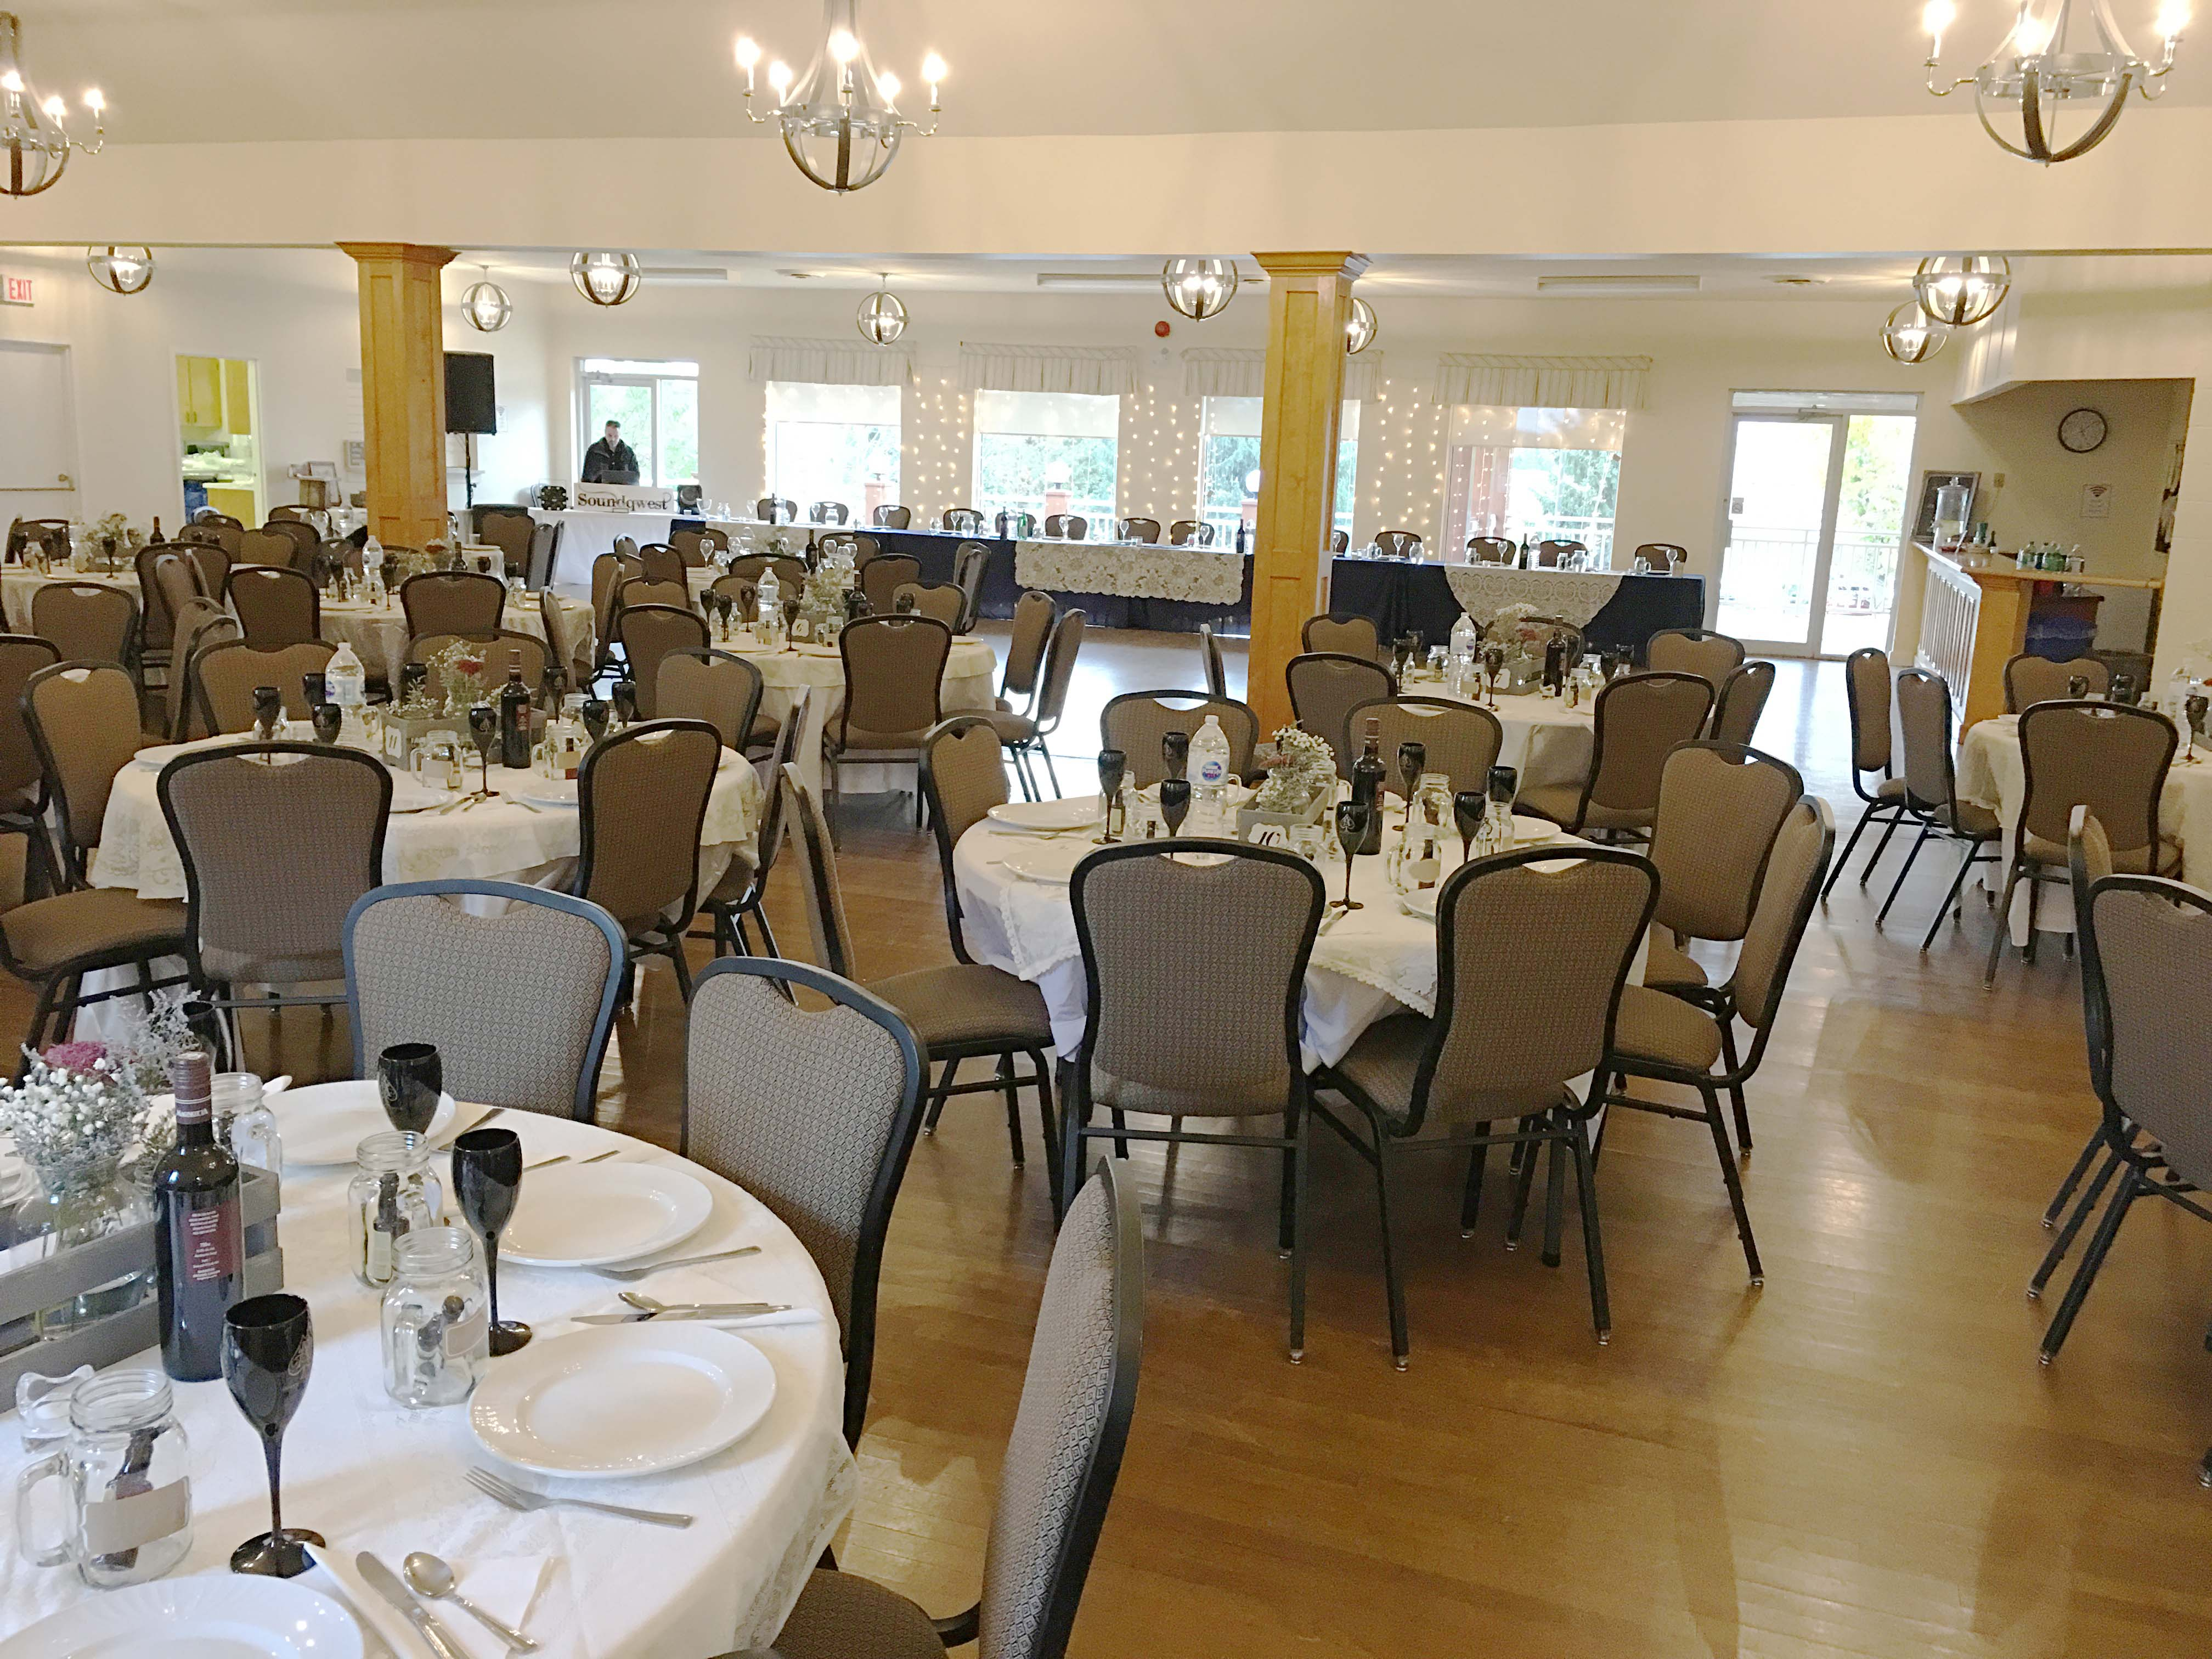 Mono Community Centre Banquet Room Decorated for a Wedding